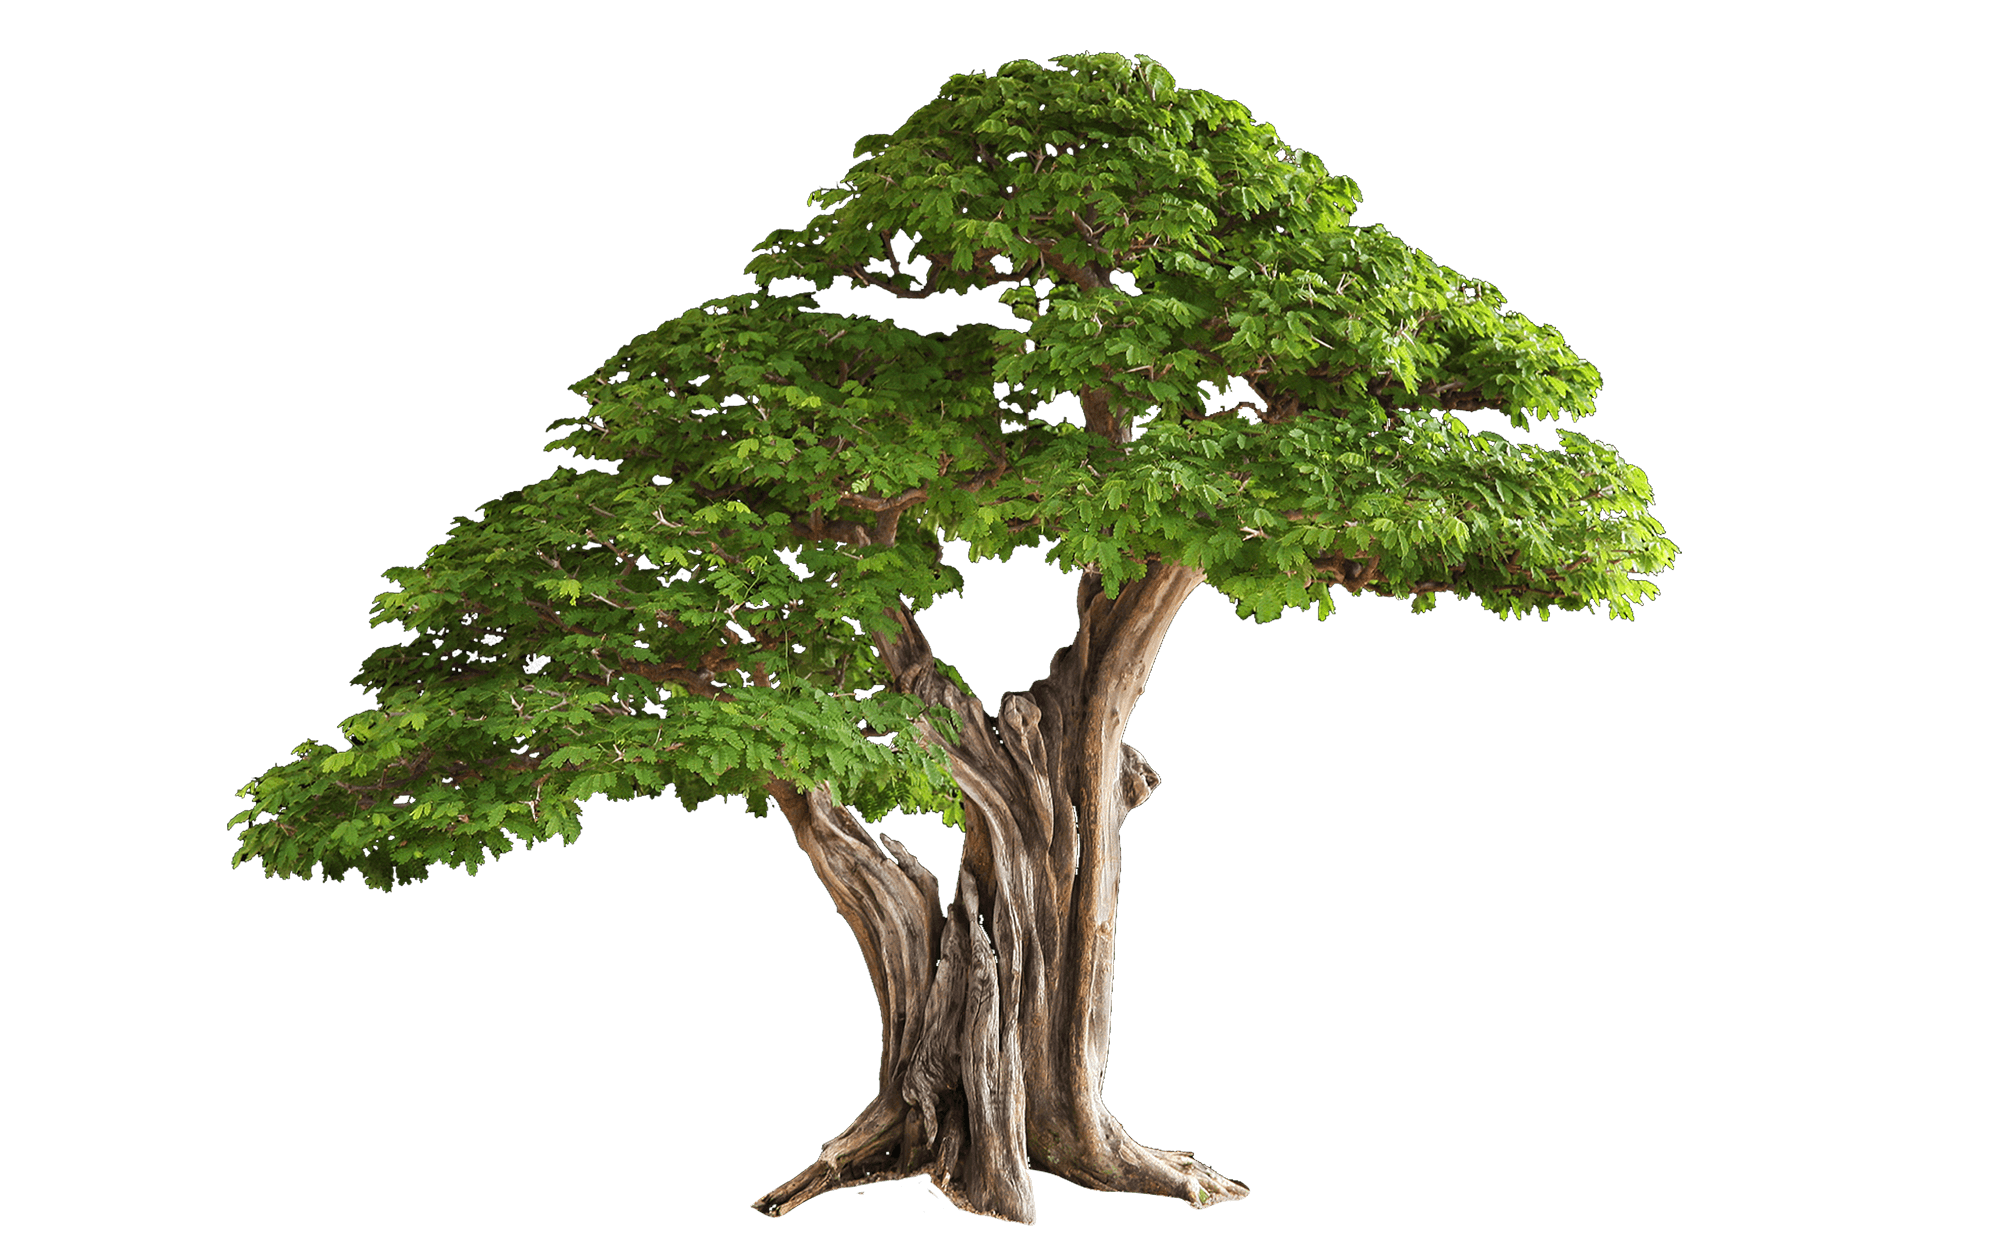 Strong tree clipart jpg black and white stock Tree jpg black and white stock